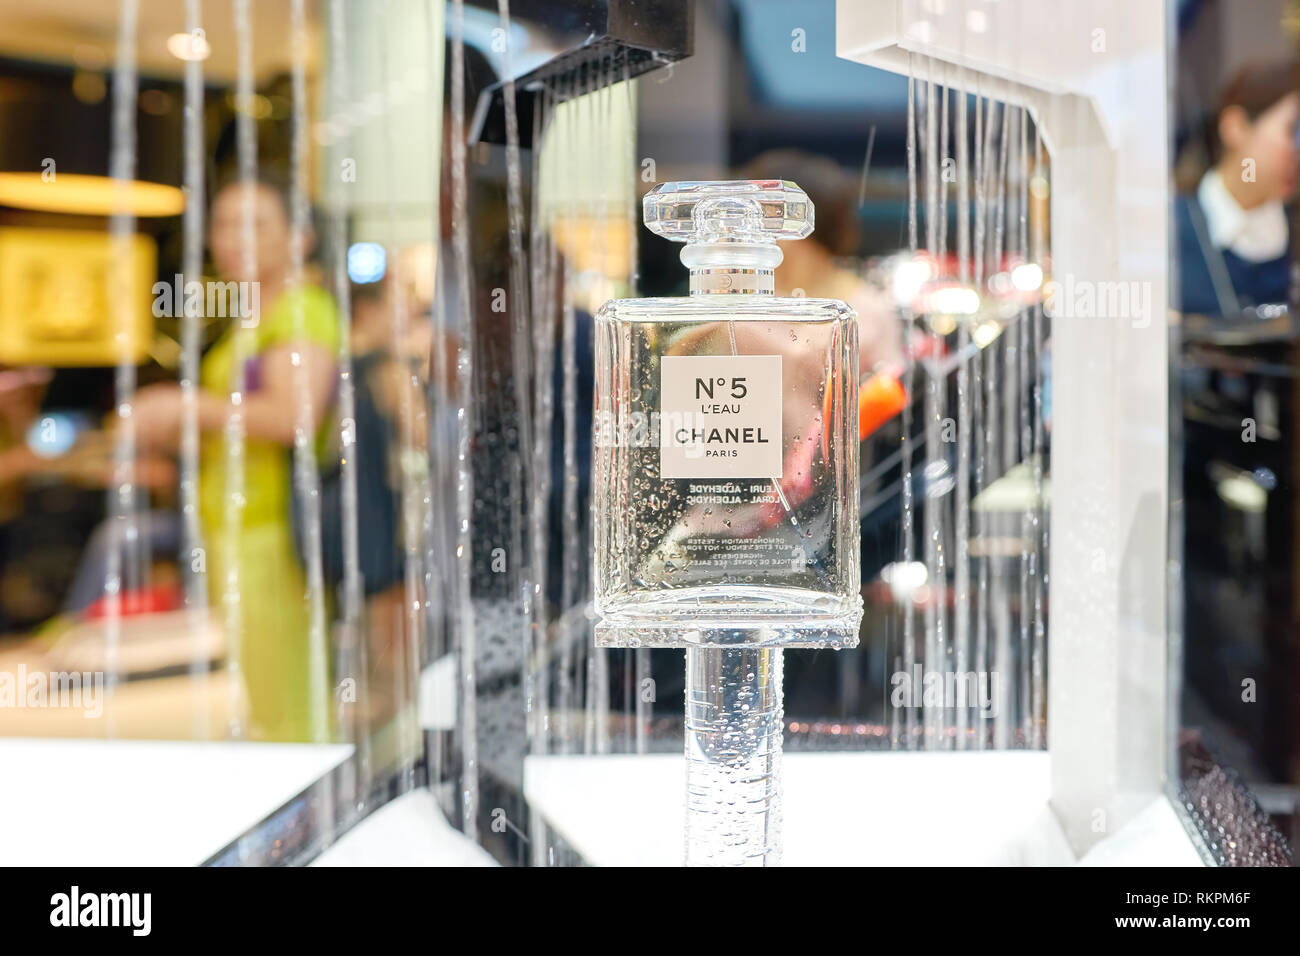 Gabrielle Chanel Stock Photos Gabrielle Chanel Stock Images Alamy